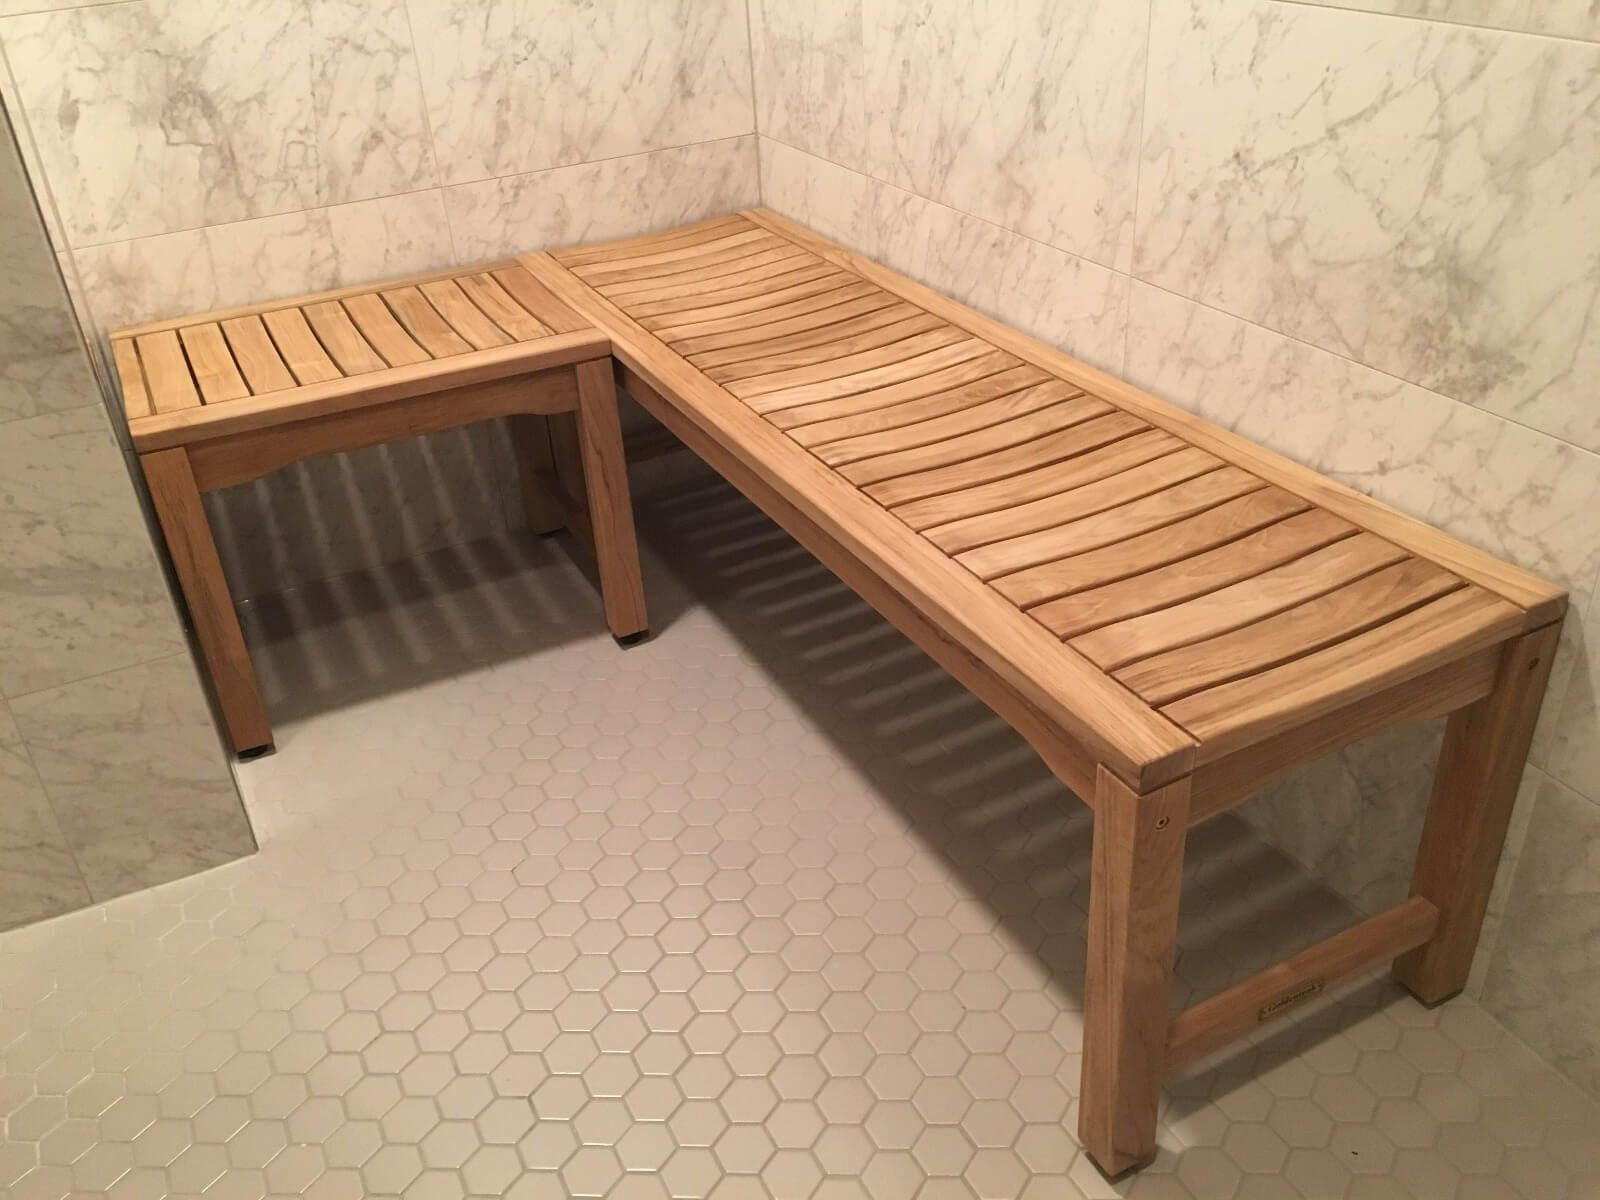 Teak Backless bench - 2 ft, Shower bench 24 in Rosemont ...